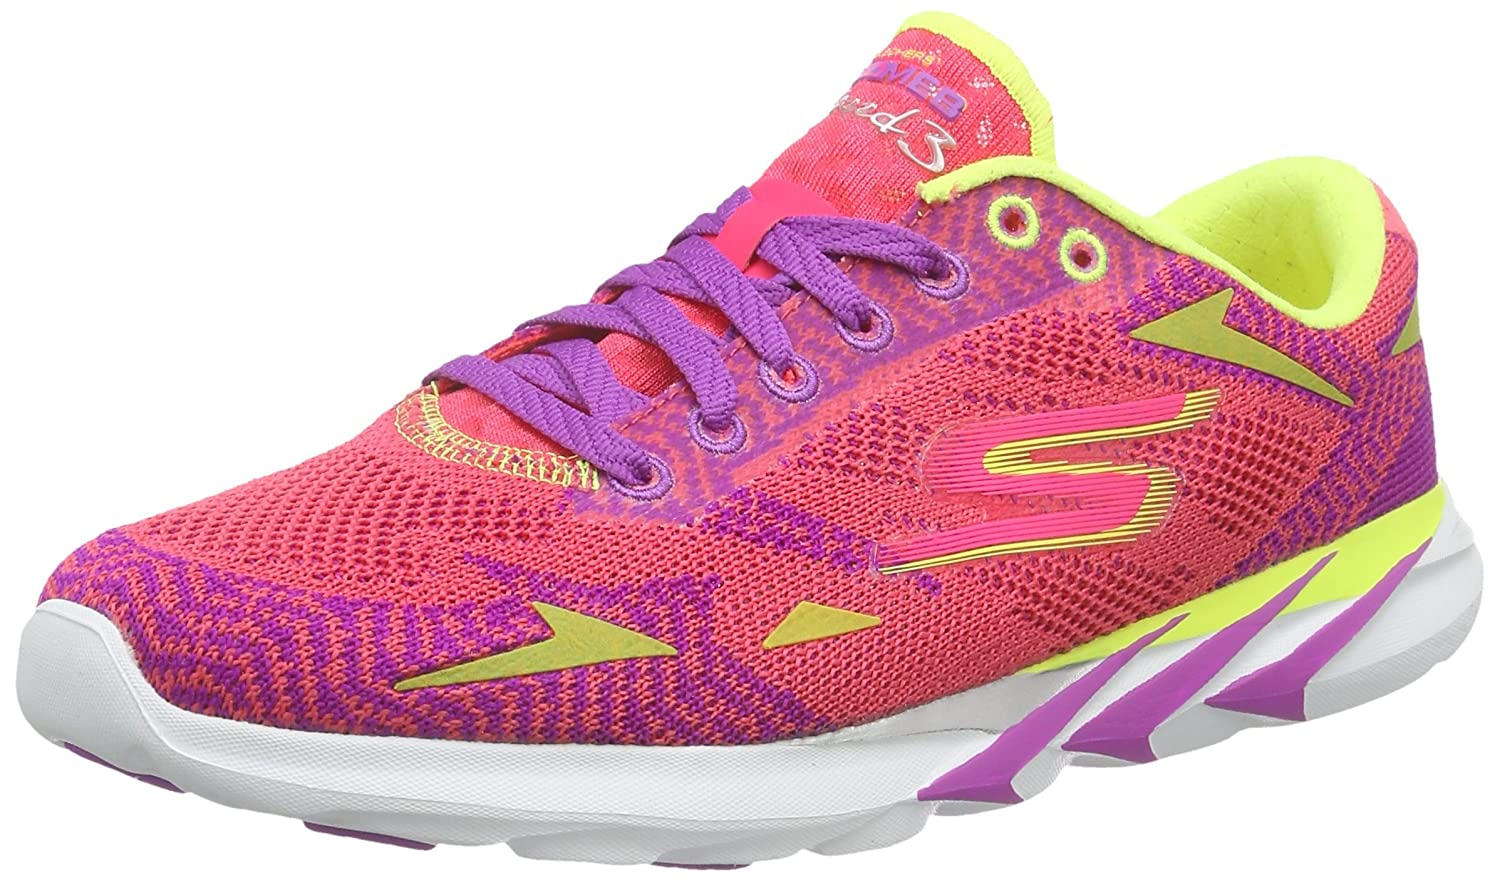 Skechers Performance Women's Go Meb Speed 3 2016 Running Shoe 14100